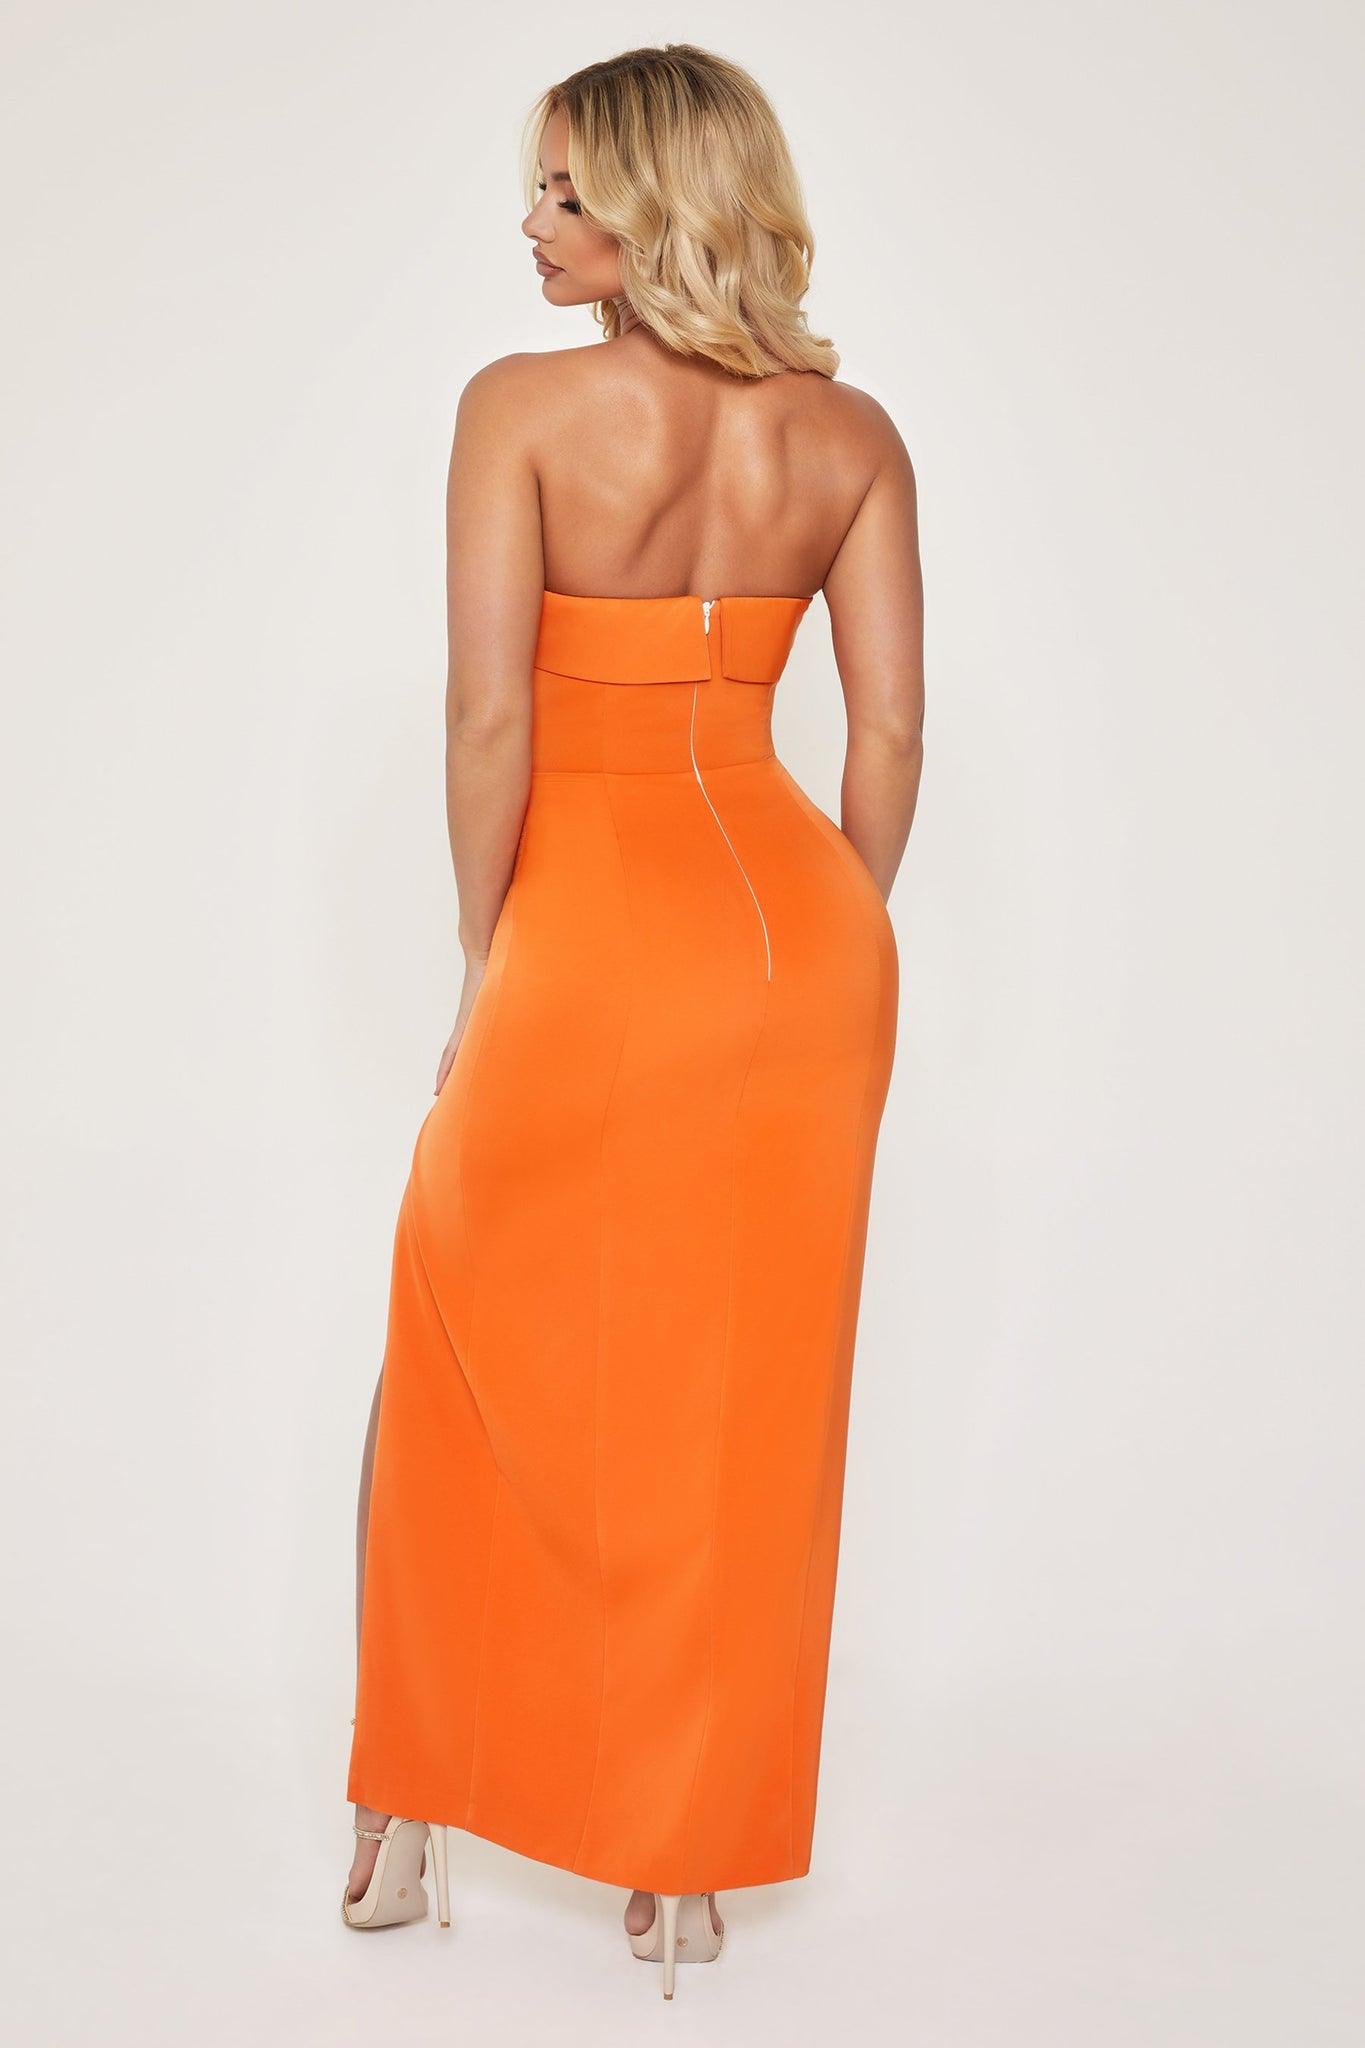 Celine Strapless Maxi Dress - Orange - MESHKI